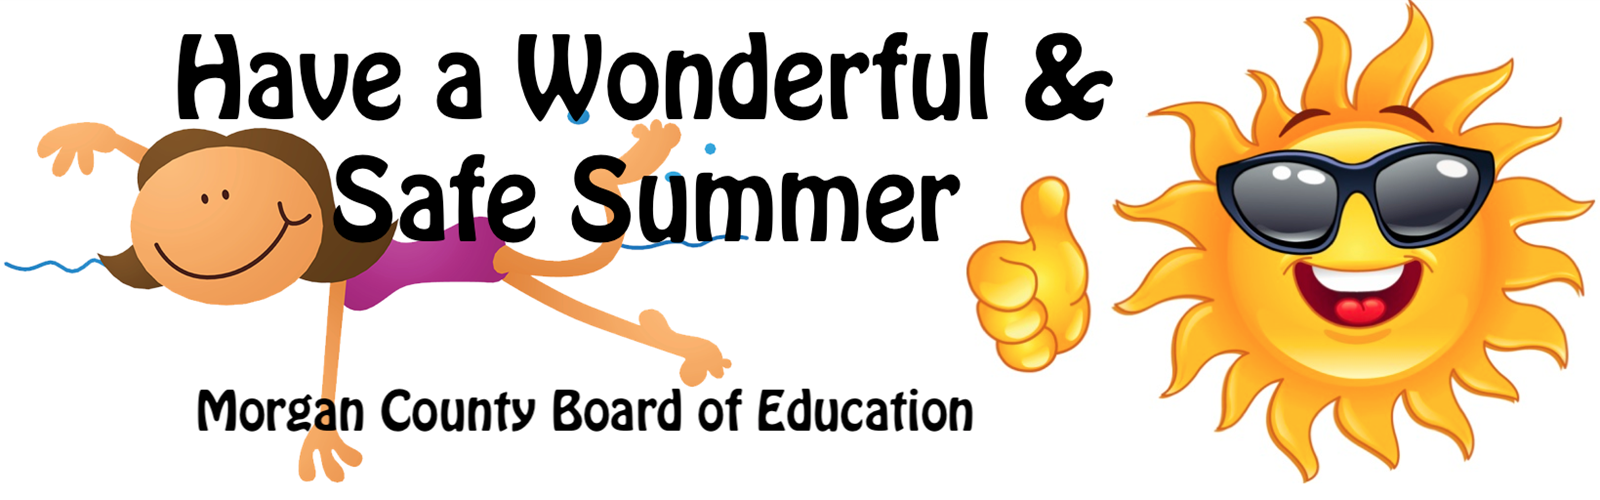 Have  Safe & Wonderful Summer